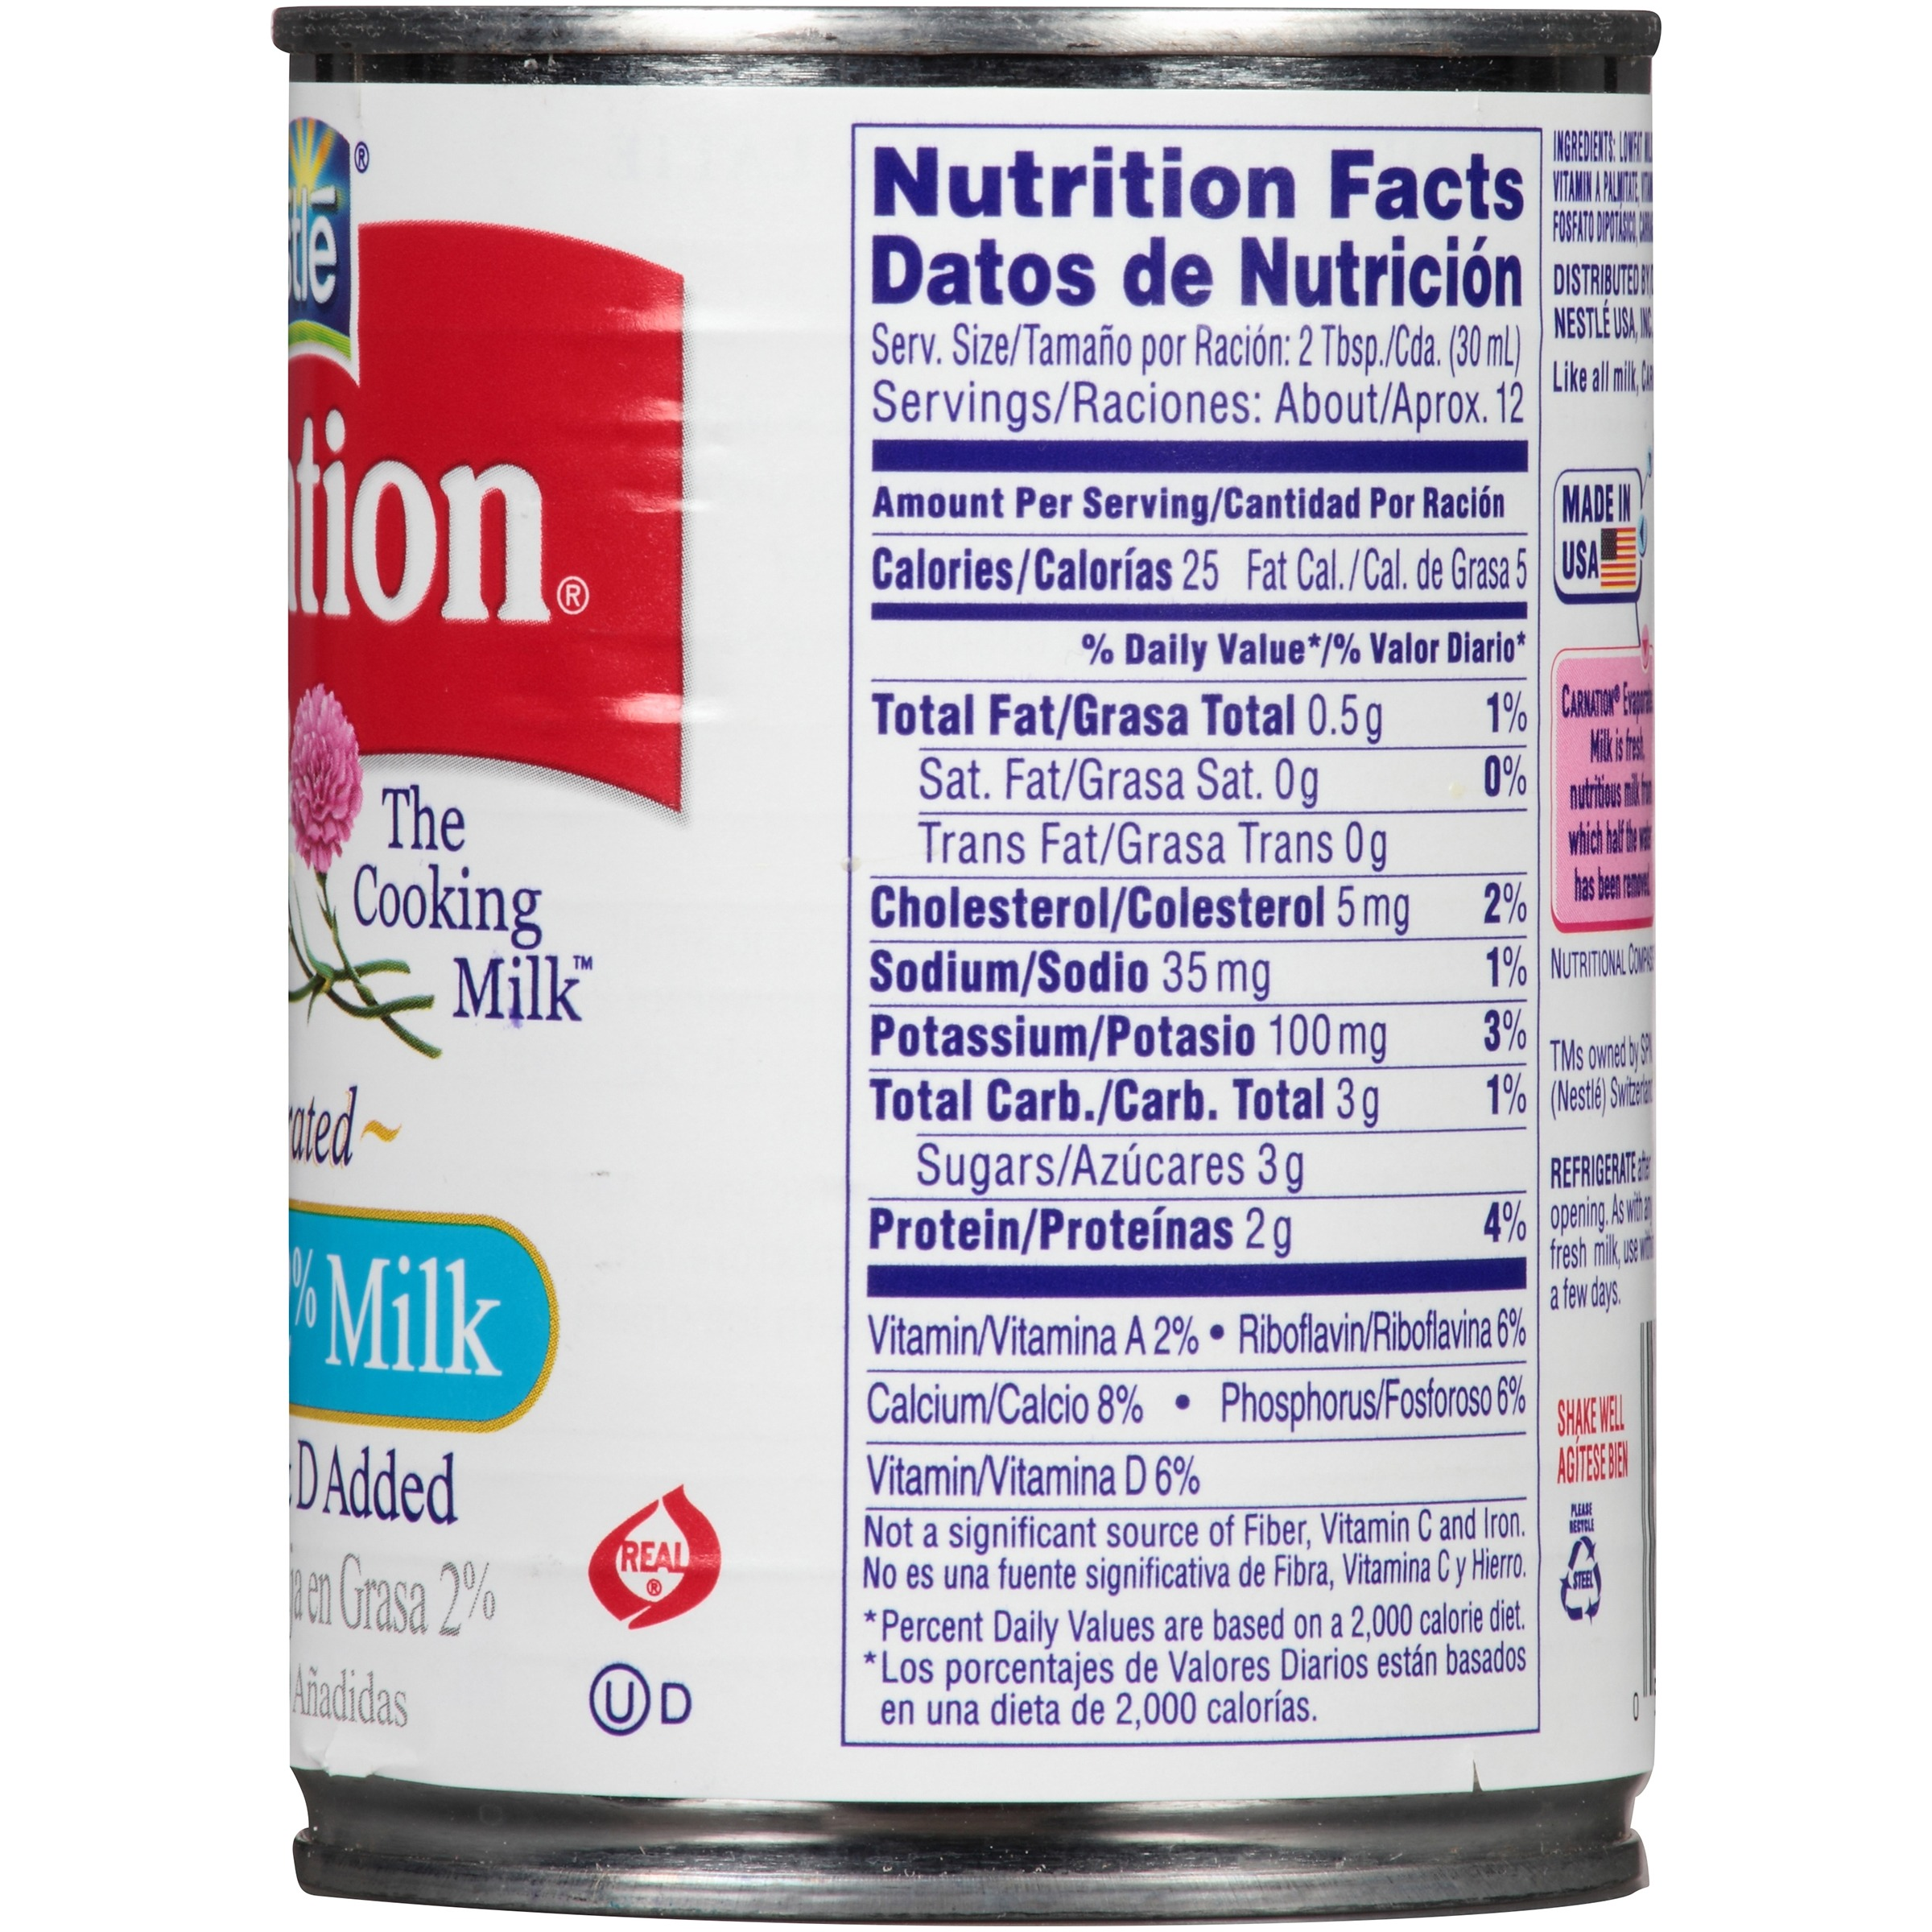 Protein Shaker Target Australia: Non Fat Condensed Milk Nutrition Facts